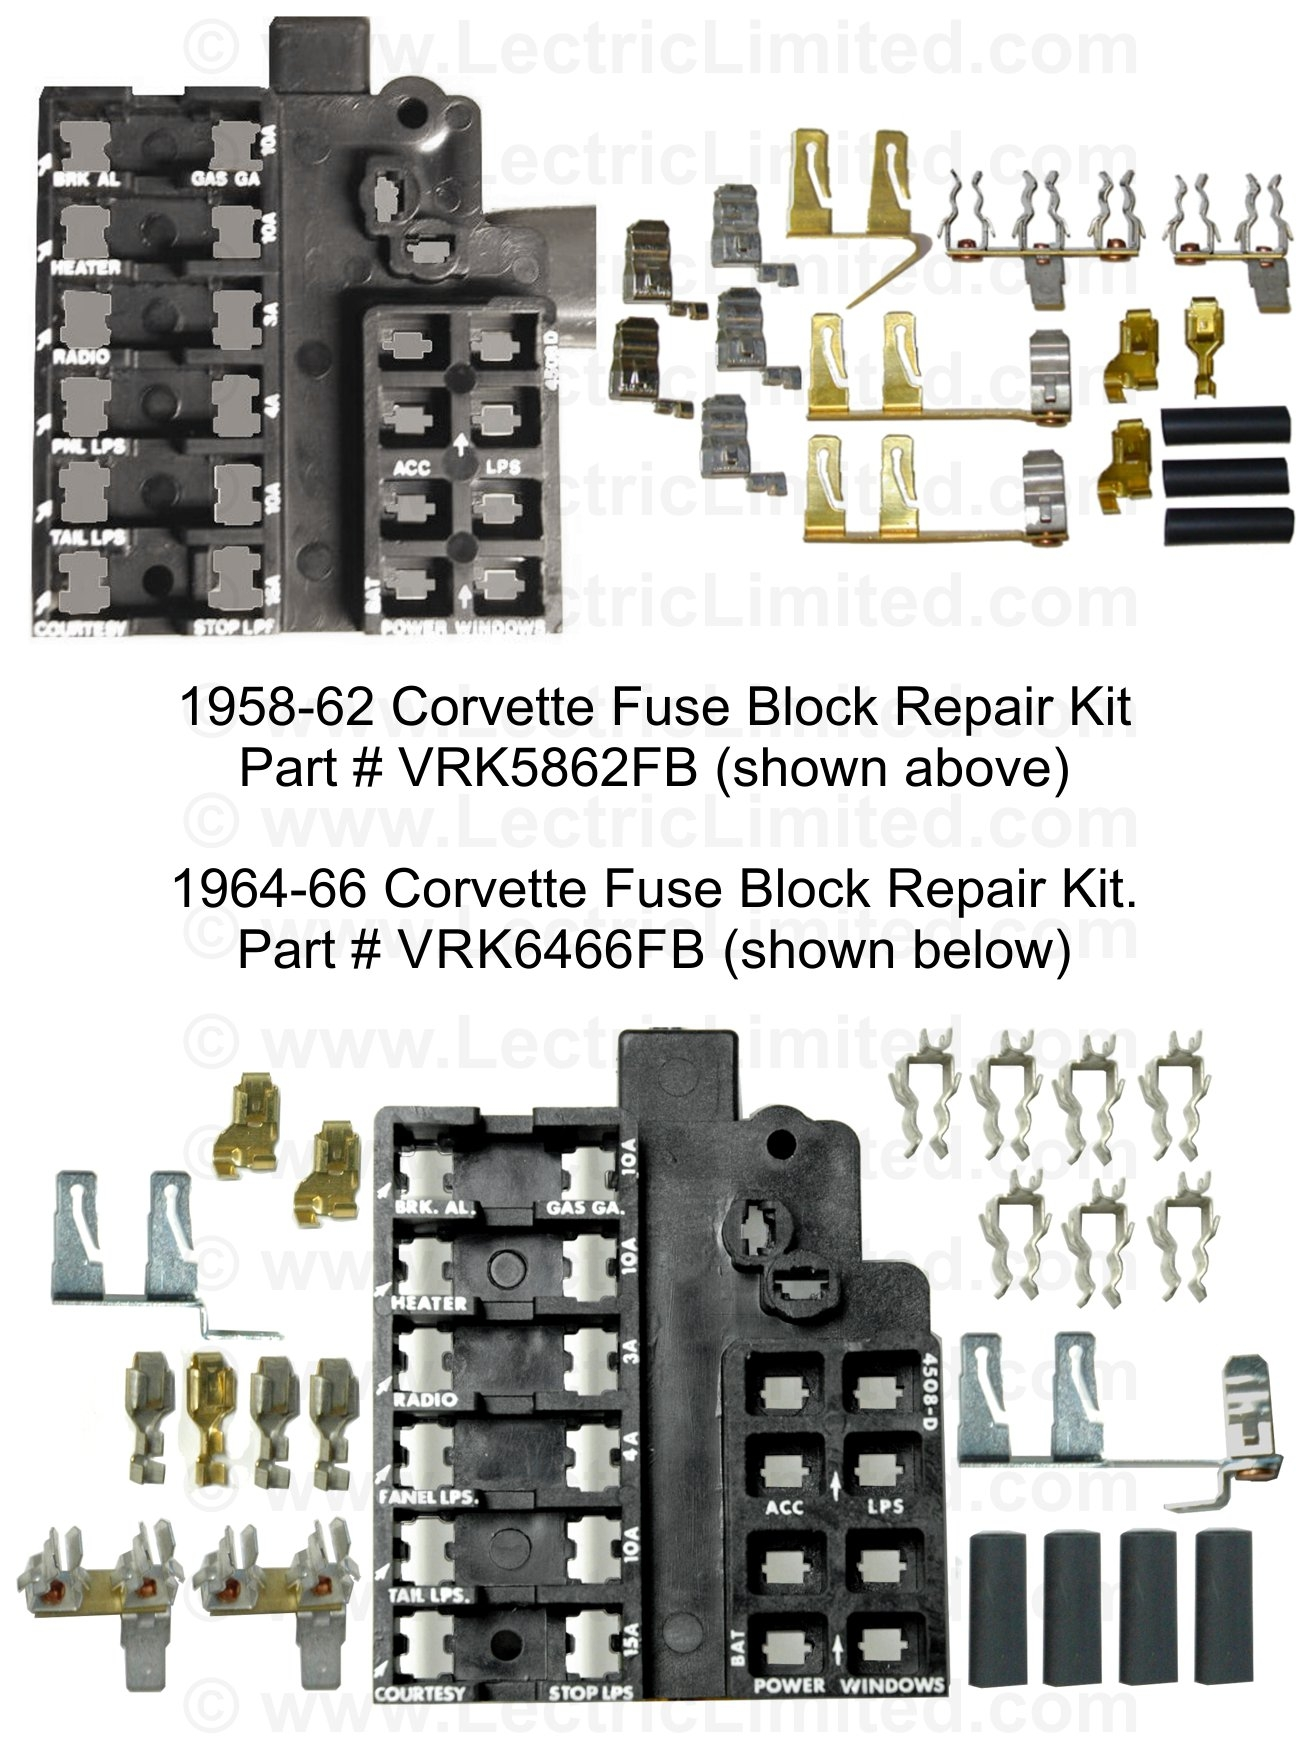 fuse_block_repair_kits repair components  at gsmx.co